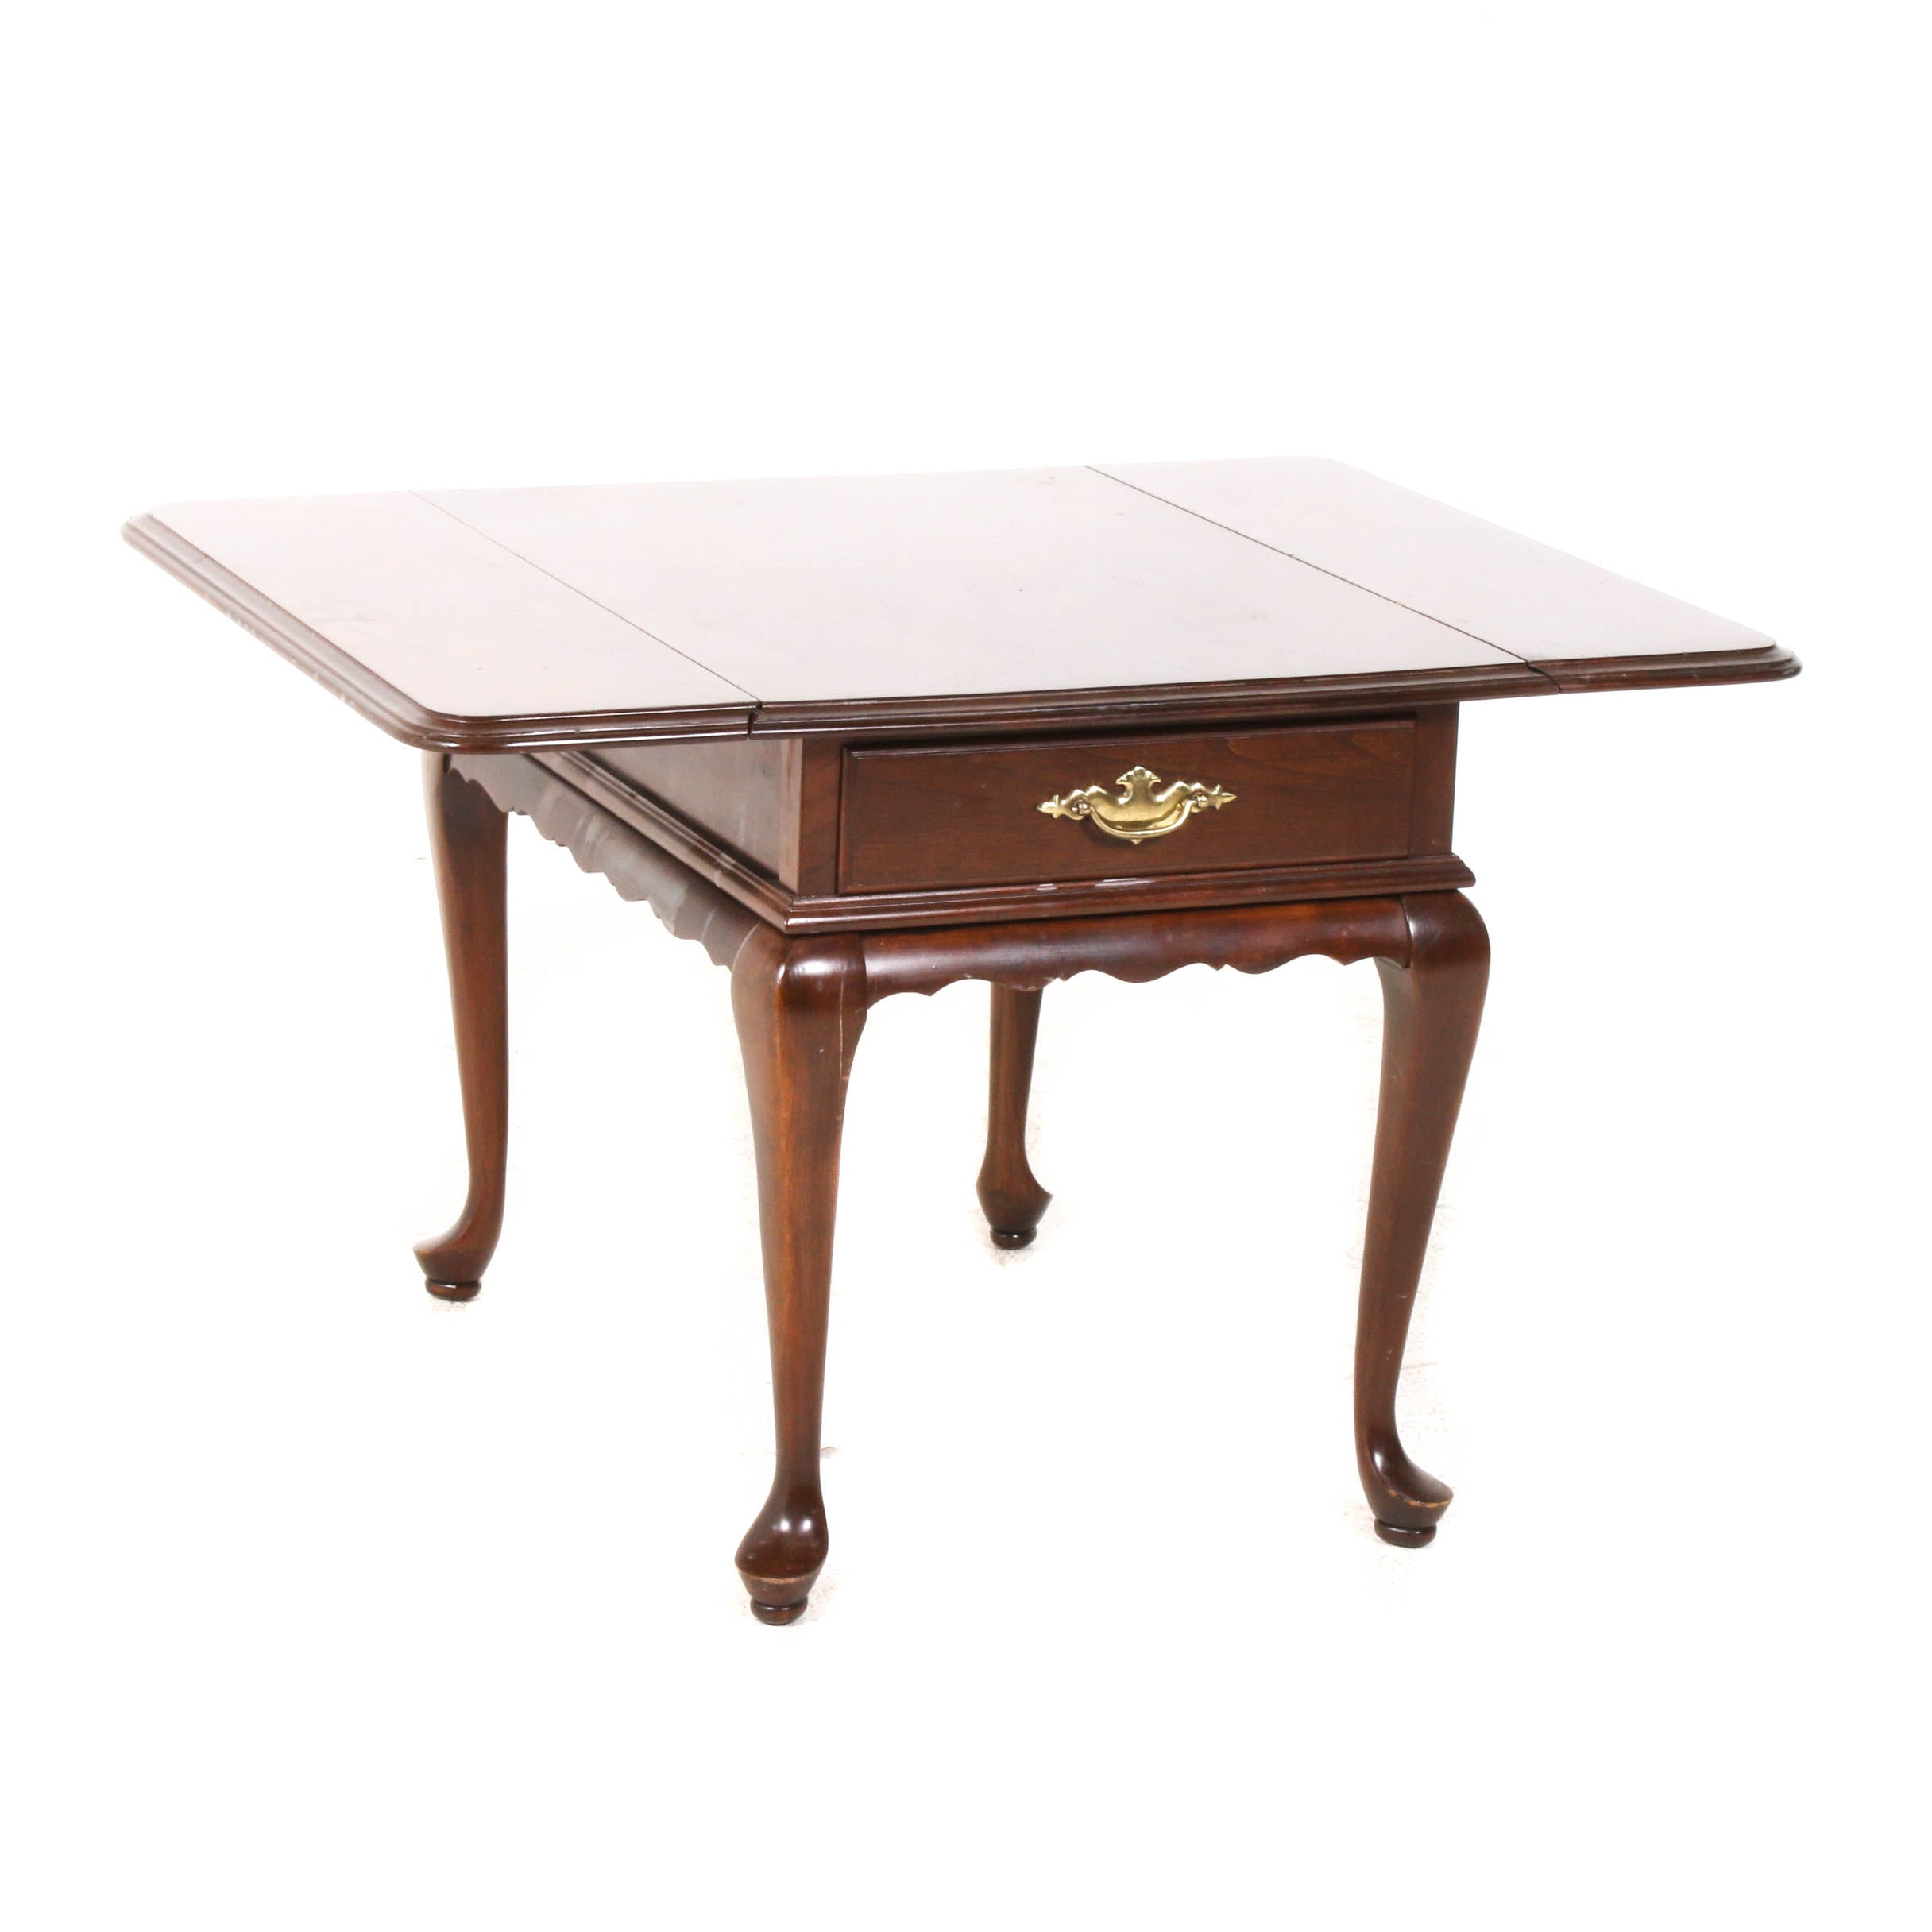 Ethan Allen Queen Anne Style Wood Drop Leaf Accent Table, Mid-Late 20th Century